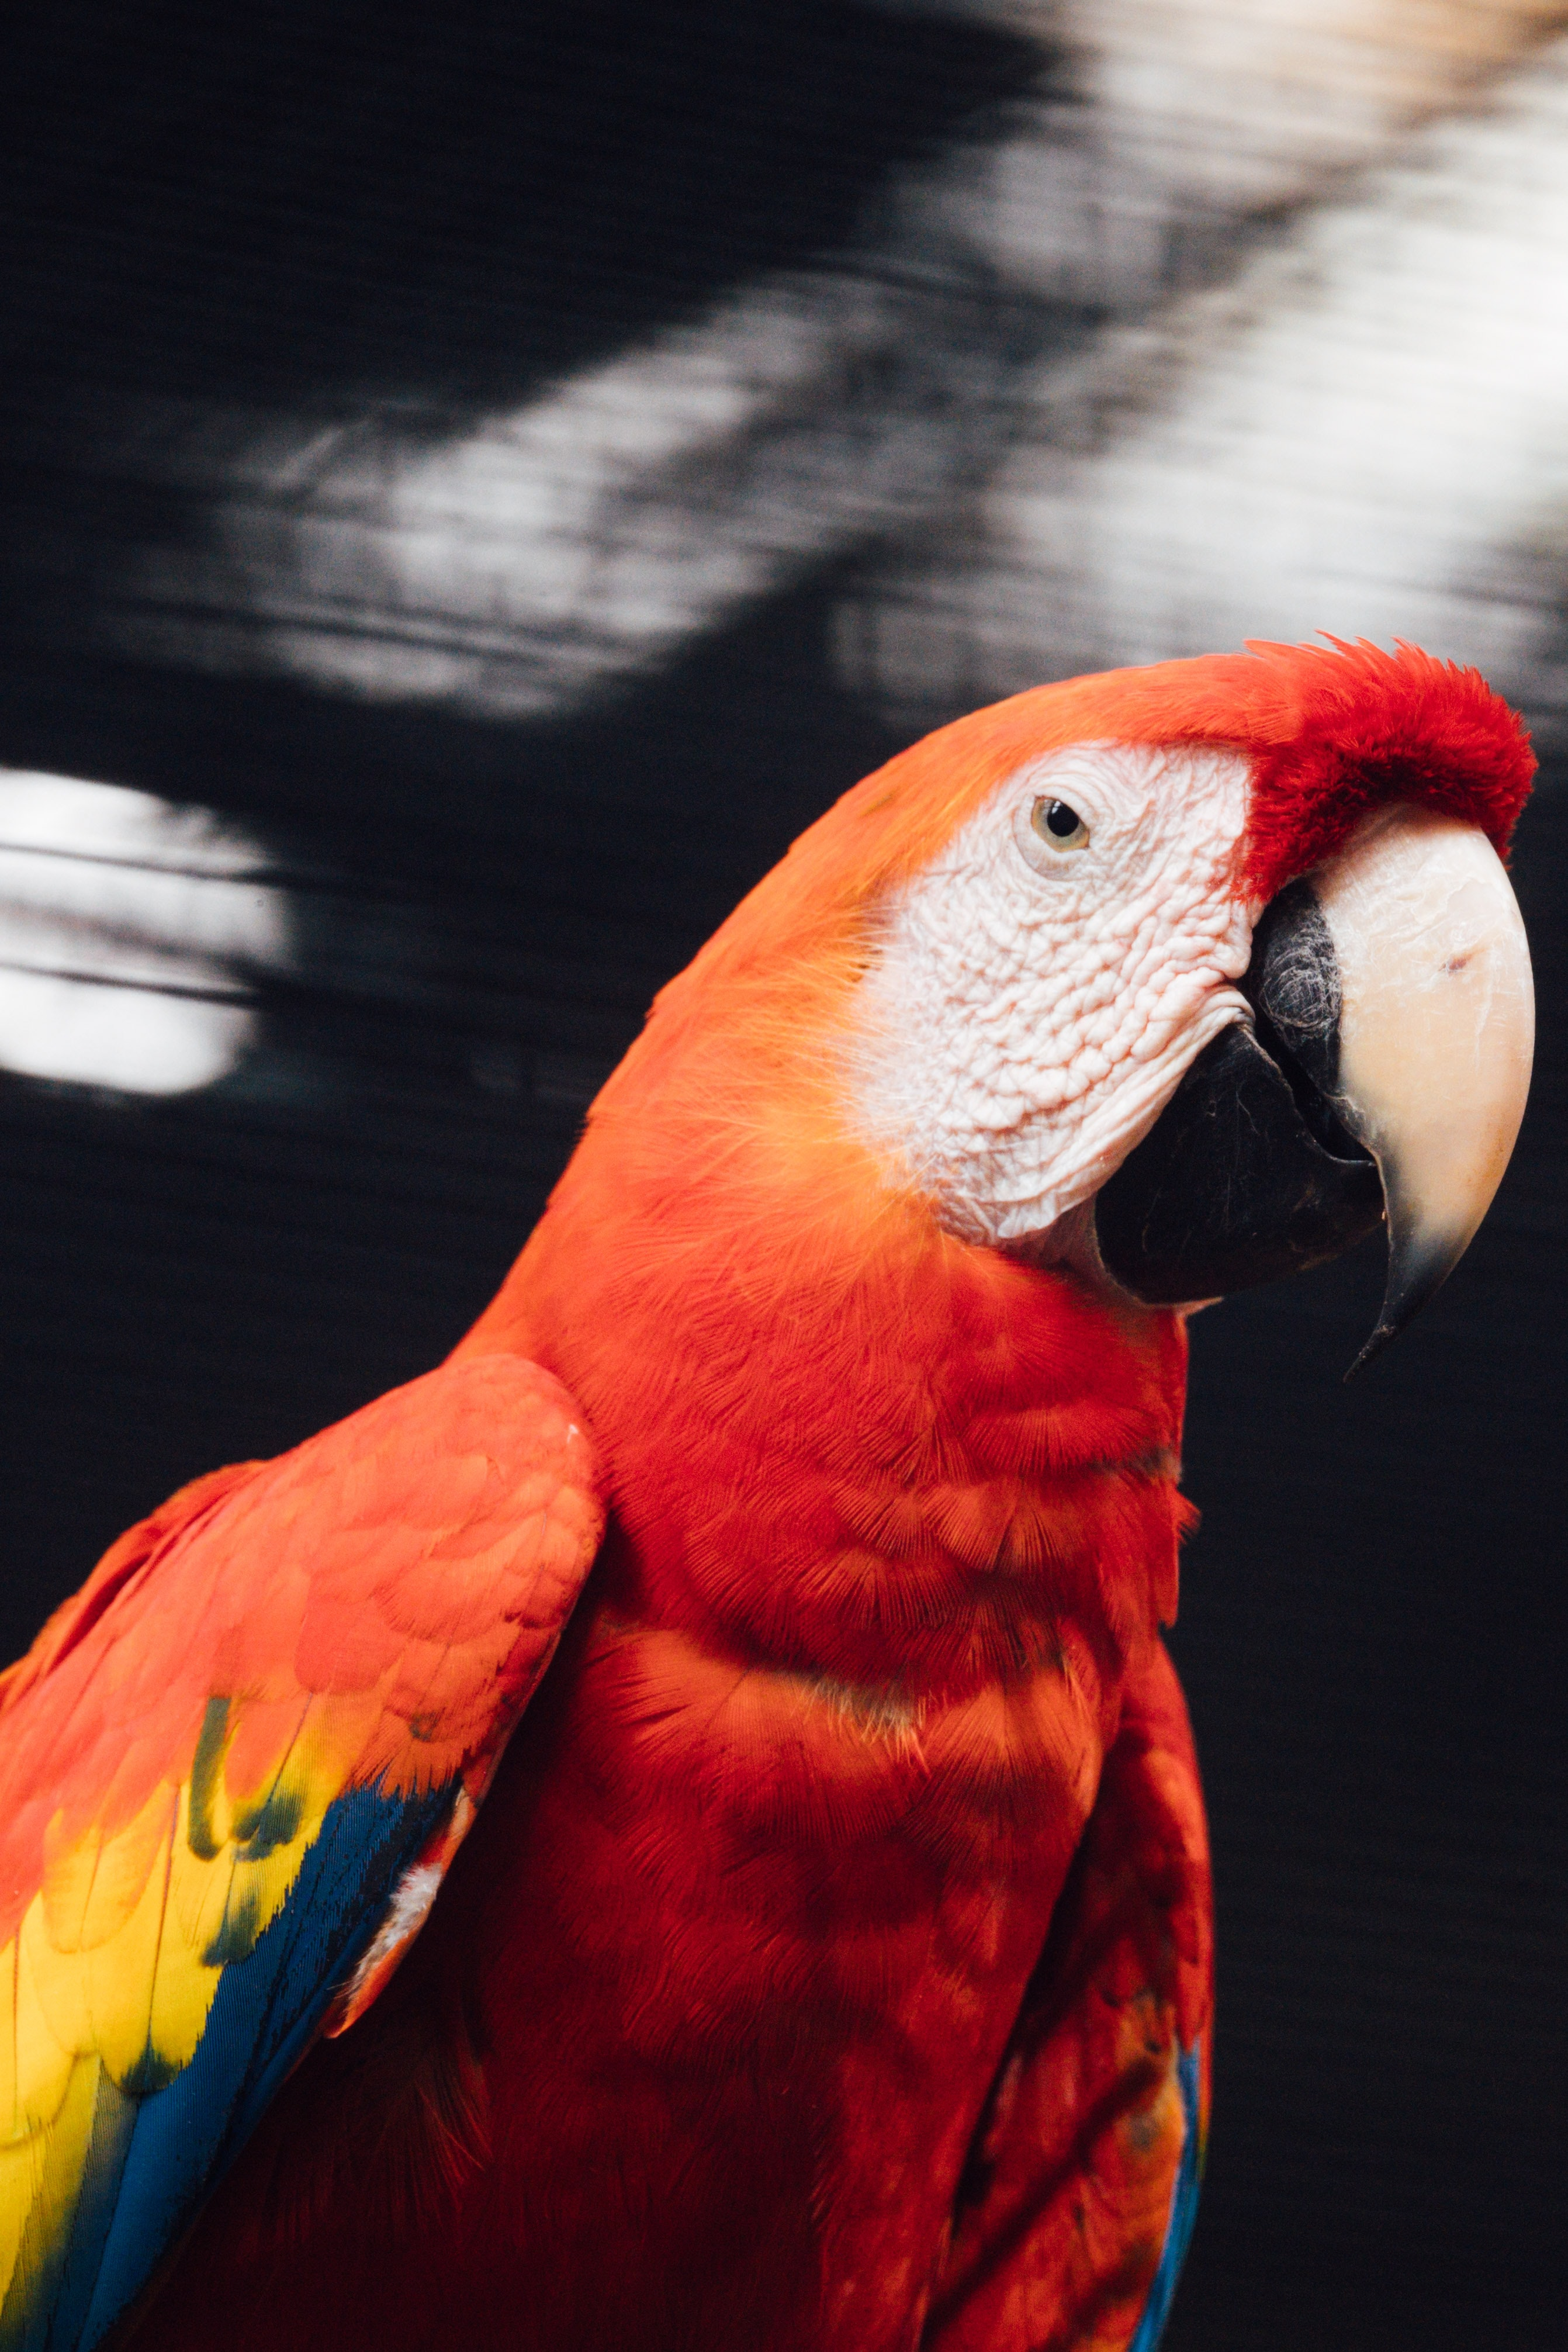 133267 download wallpaper Animals, Macaw, Parrots, Bird screensavers and pictures for free